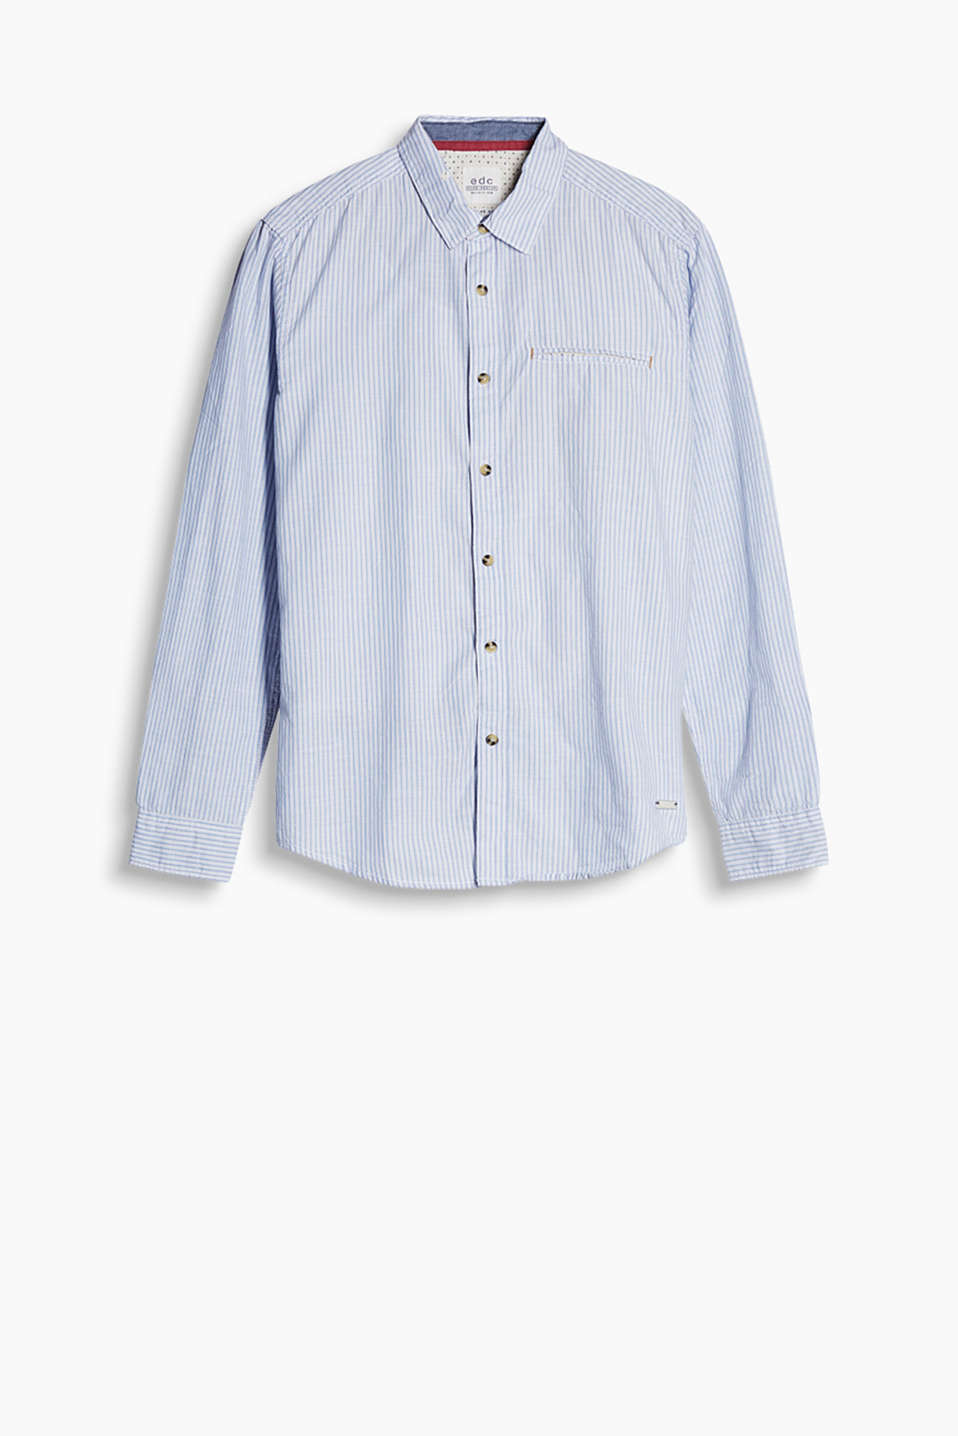 Shirt with a welt pocket on the chest and accent coloured trims, made from cotton chambray with a fine melange finish